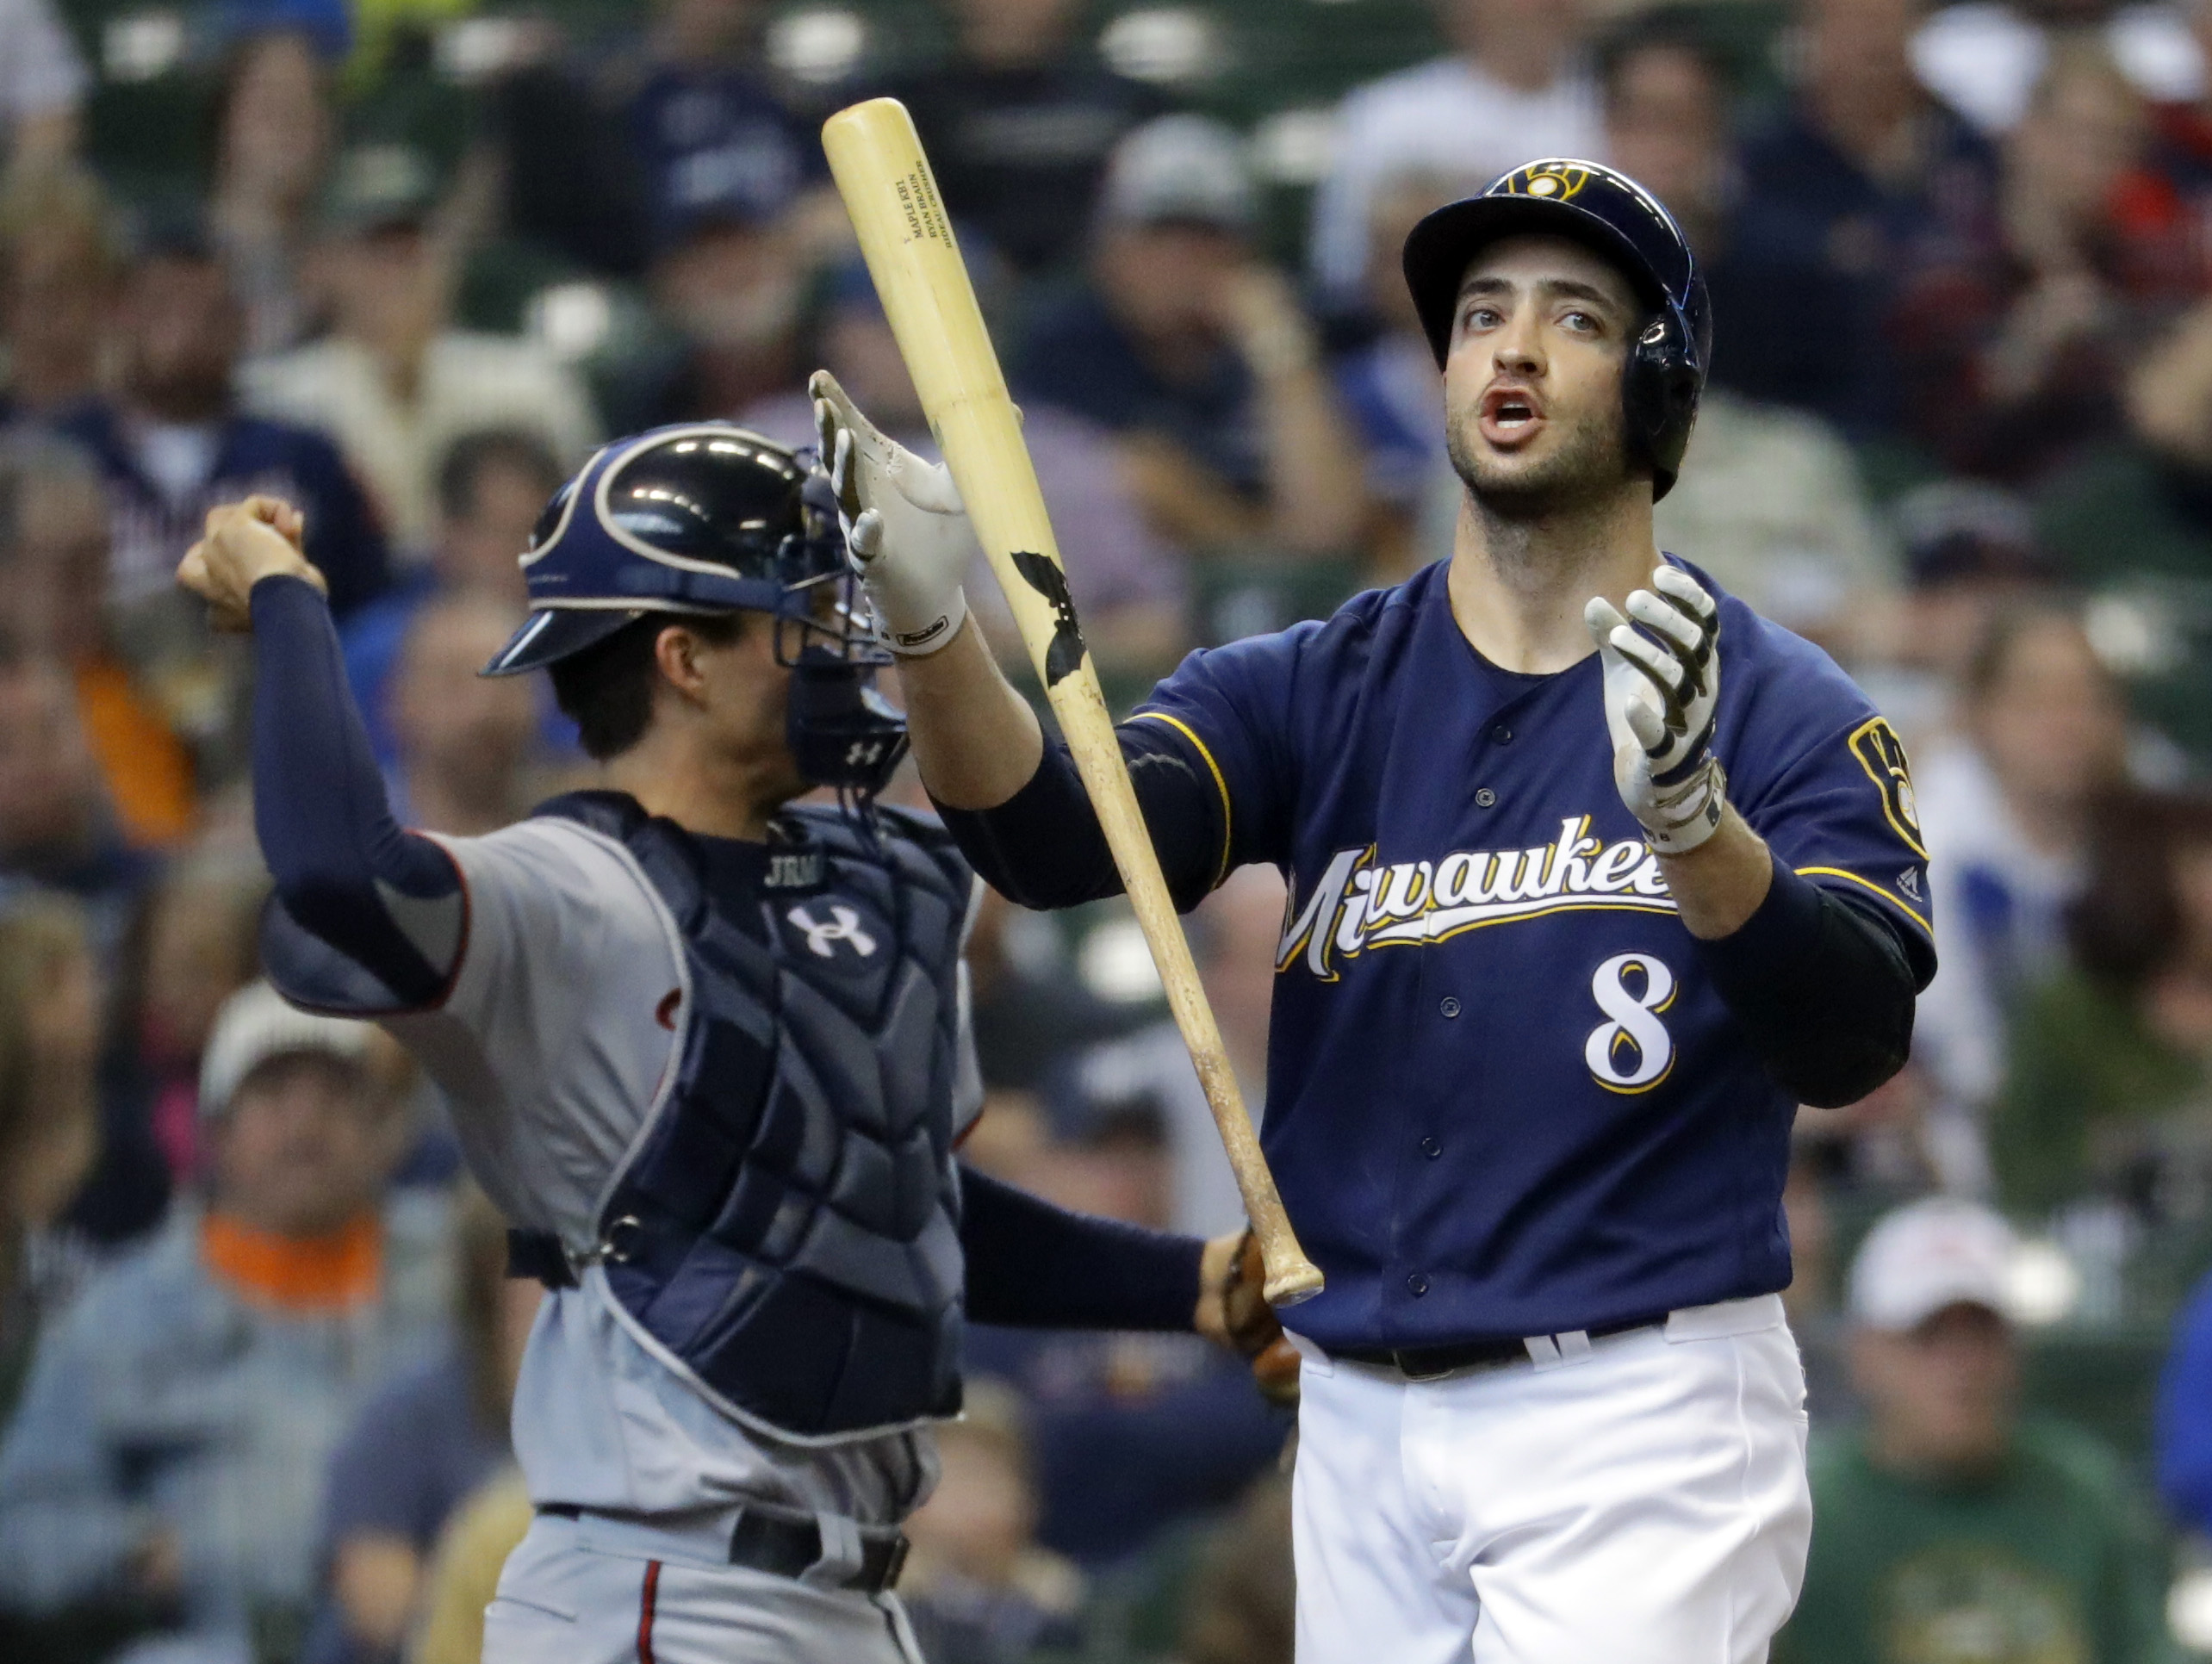 Milwaukee Brewers' Ryan Braun flips his bat after striking out during the sixth inning of a baseball game against the Minnesota Twins Thursday, April 21, 2016, in Milwaukee. (AP Photo/Morry Gash)